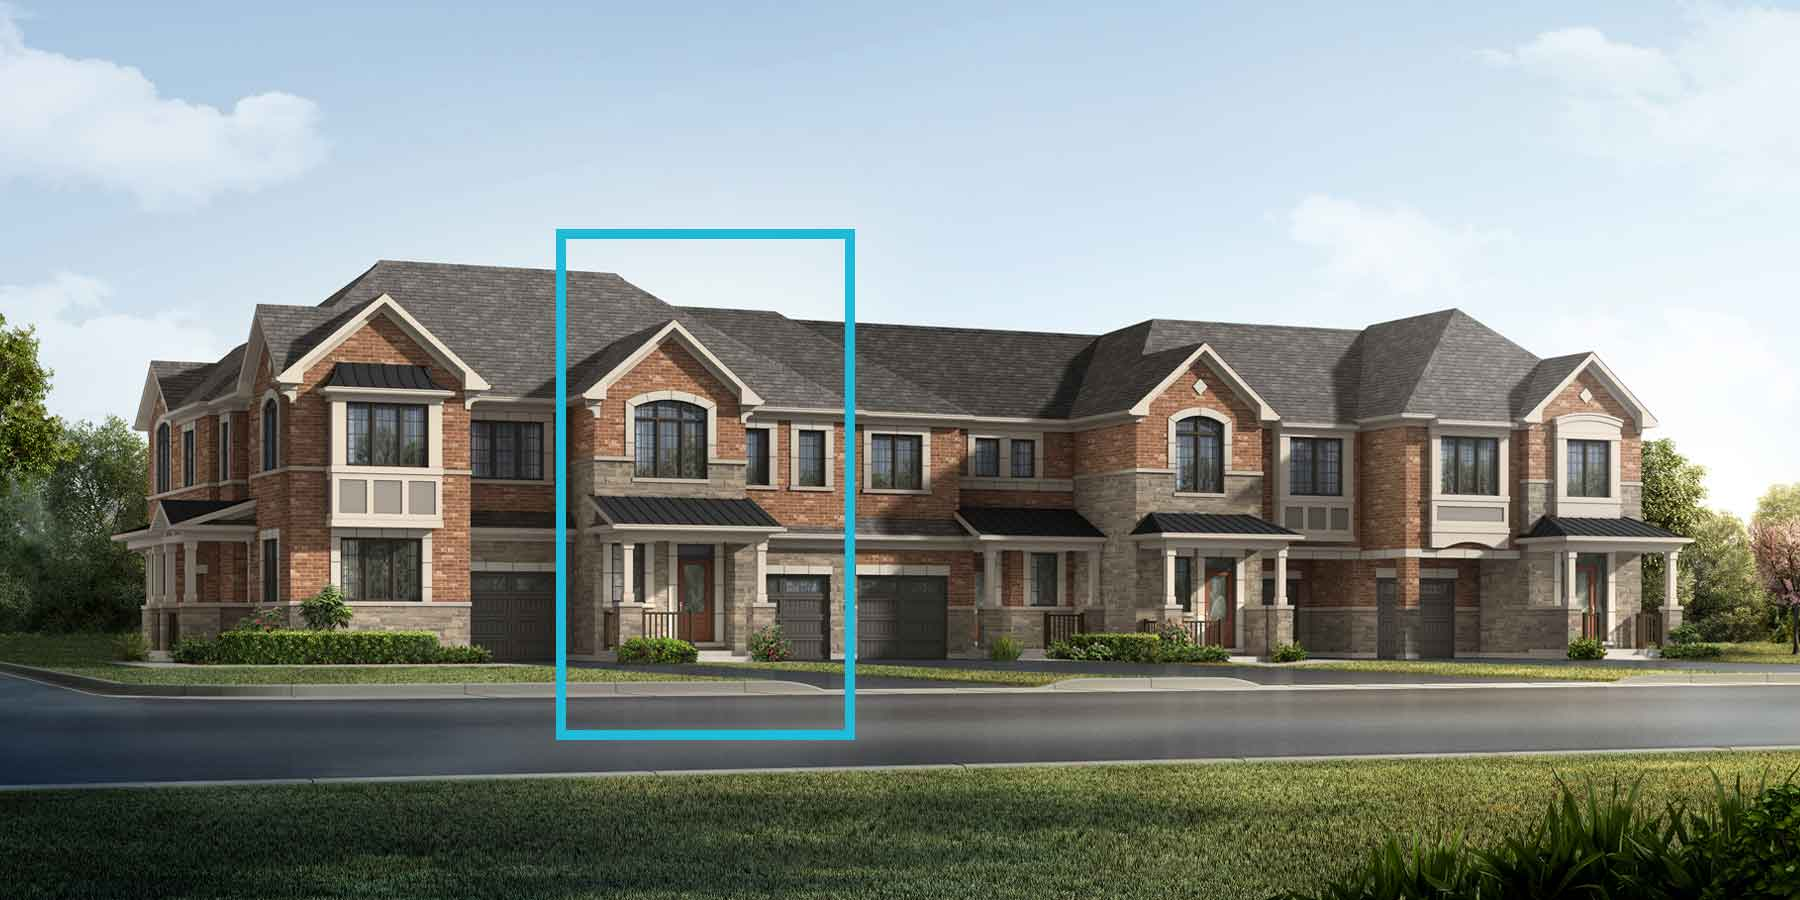 Laurel Plan TownHomes at Springwater in Markham Ontario by Mattamy Homes